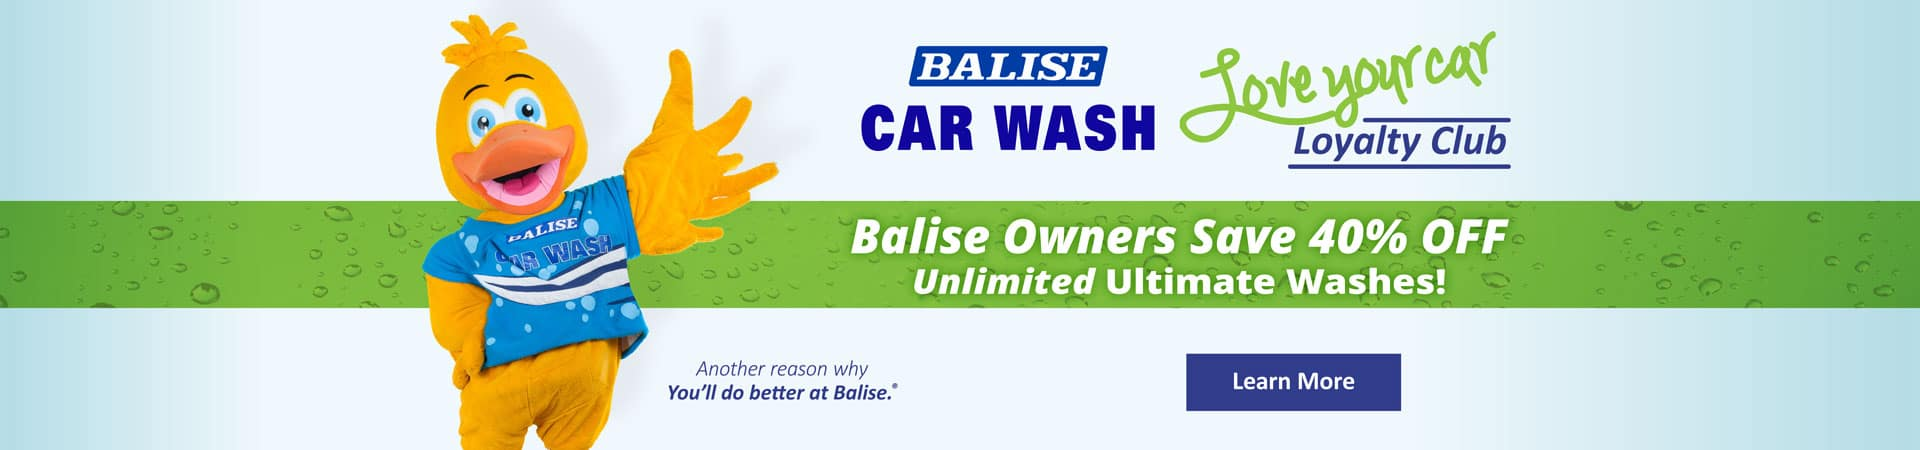 Balise Love Your Car Loyalty Club at Balise Car Wash